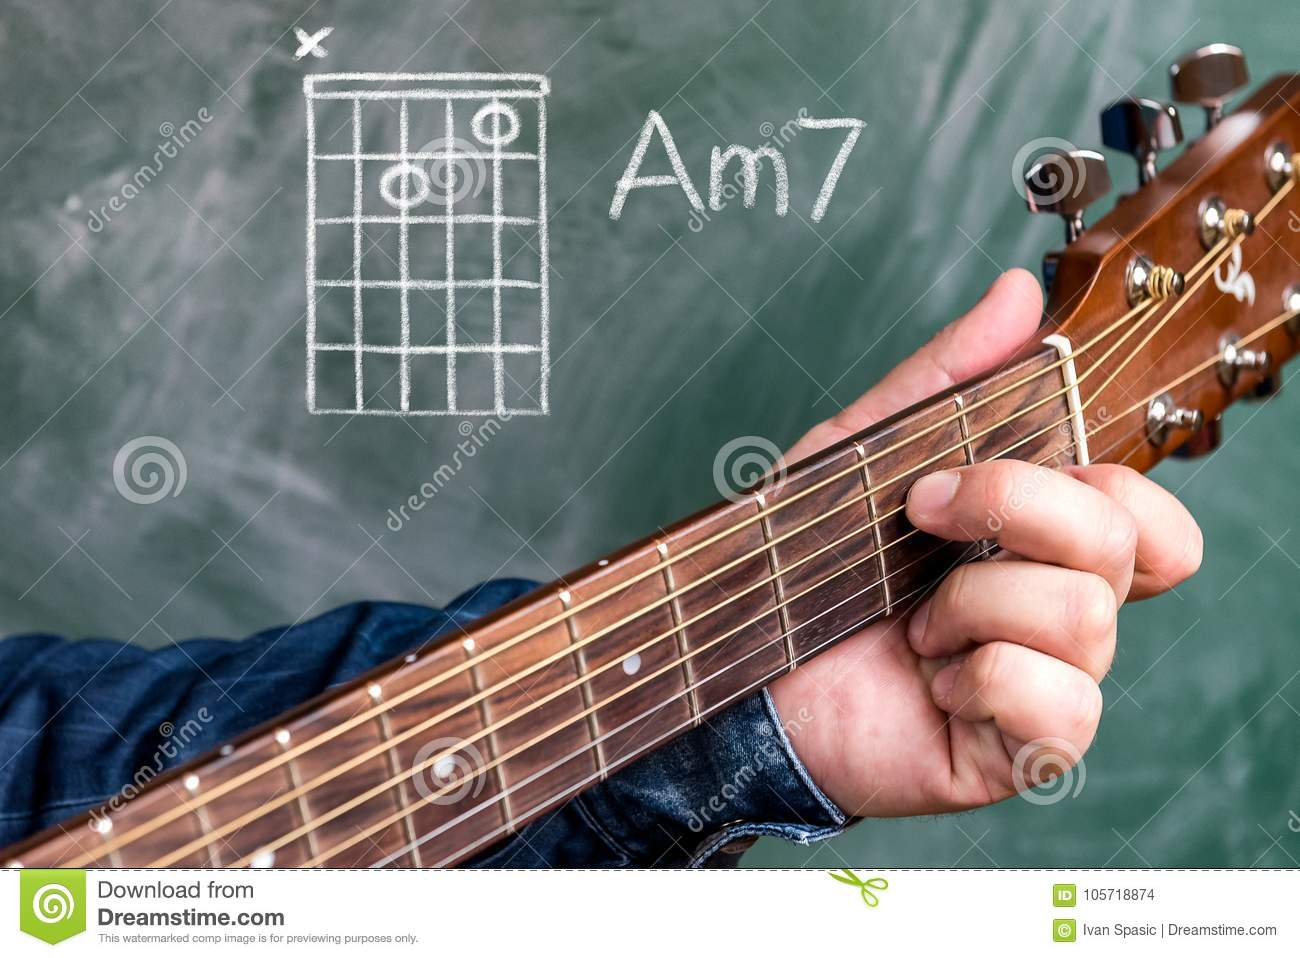 Man Playing Guitar Chords Displayed On A Blackboard Chord A Minor 7